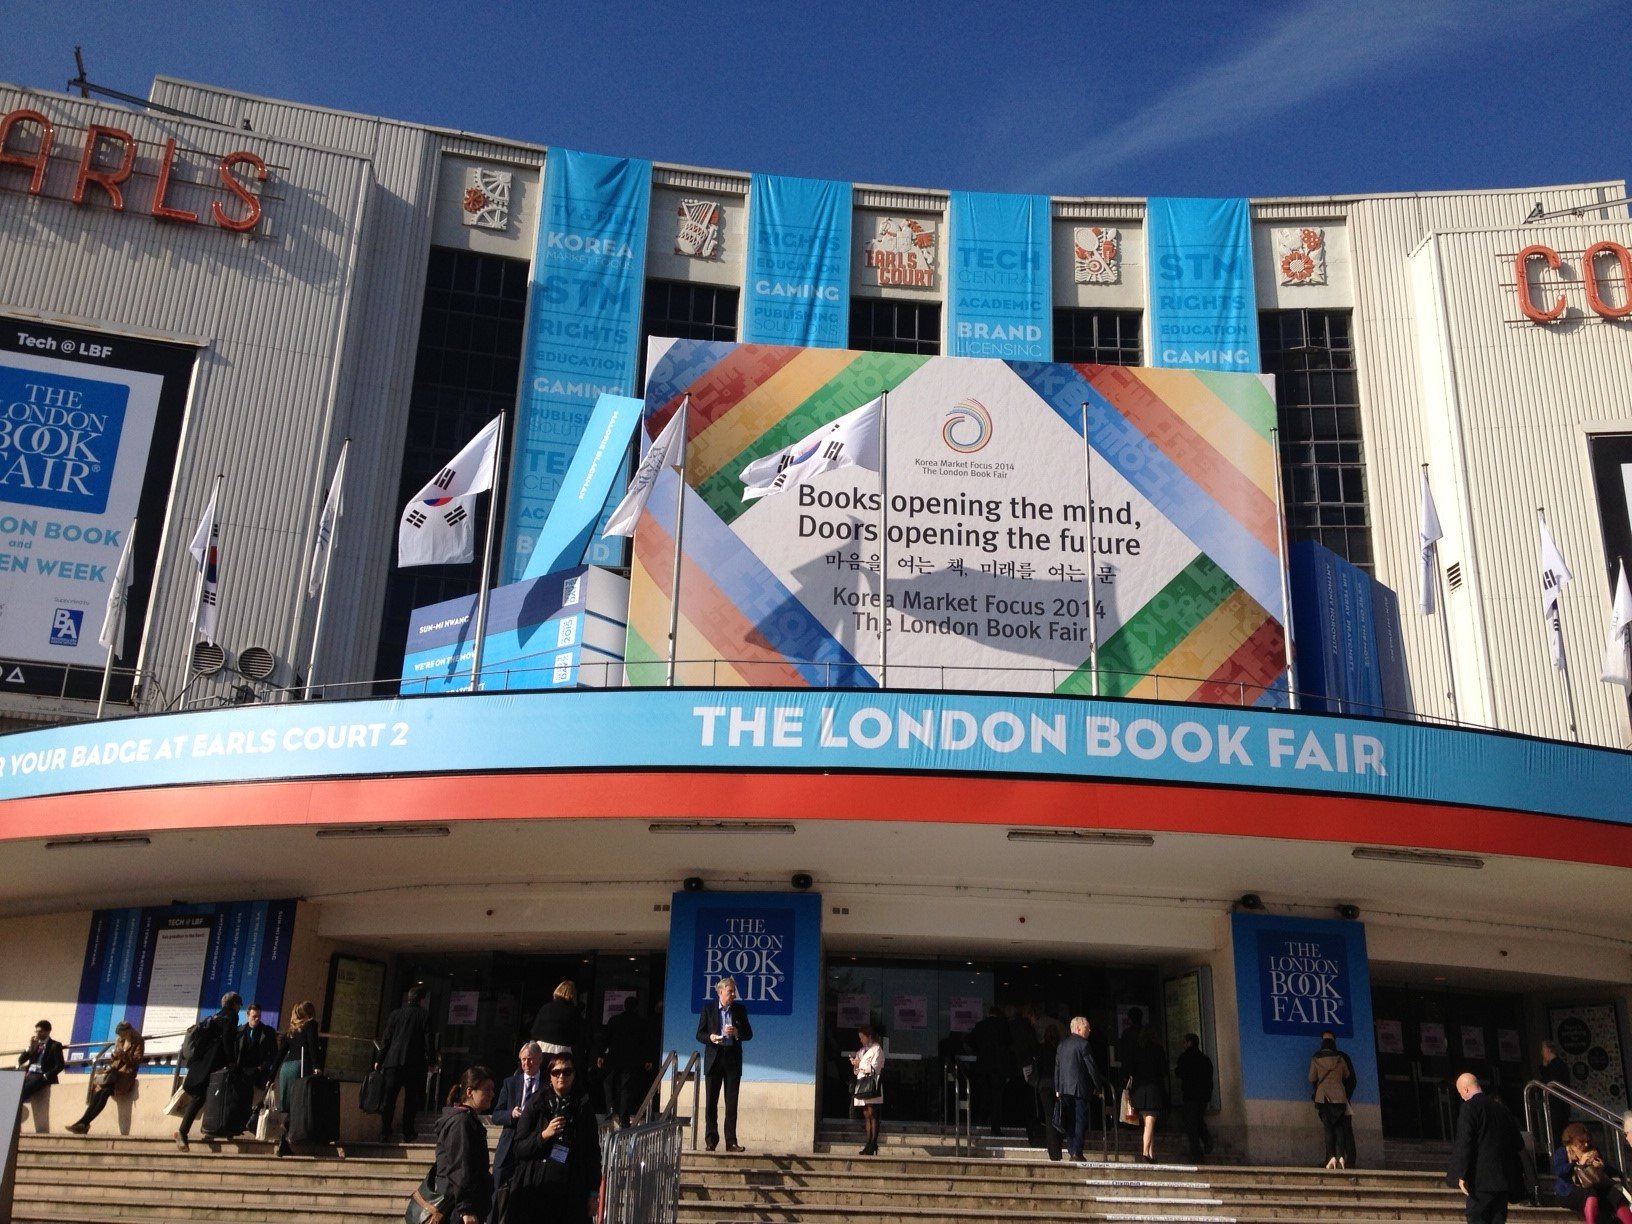 London Book Fair, 2014